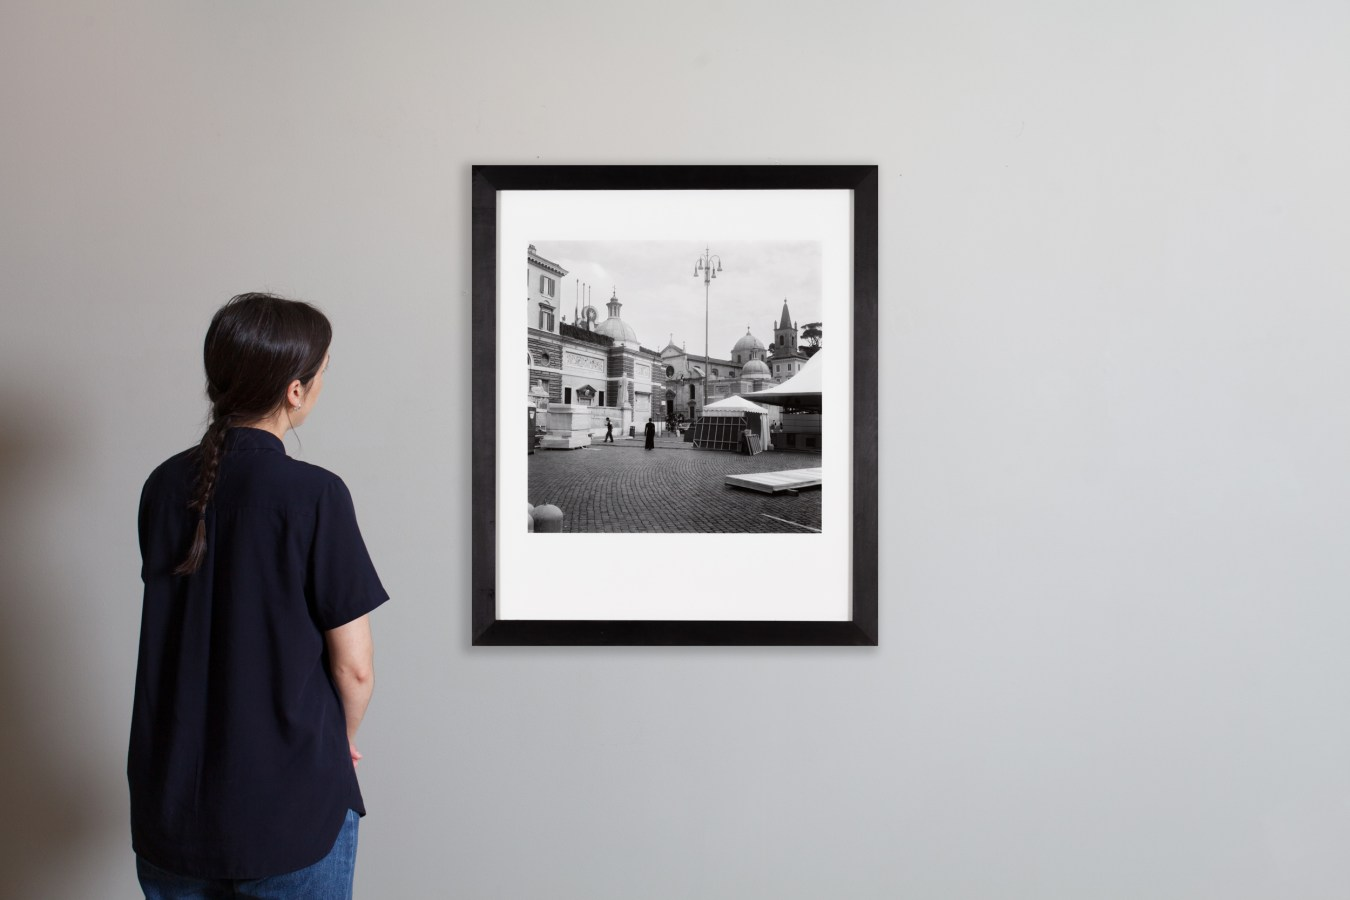 Installation photograph of a person observing a framed black and white photograph of a woman in a Roman plaza